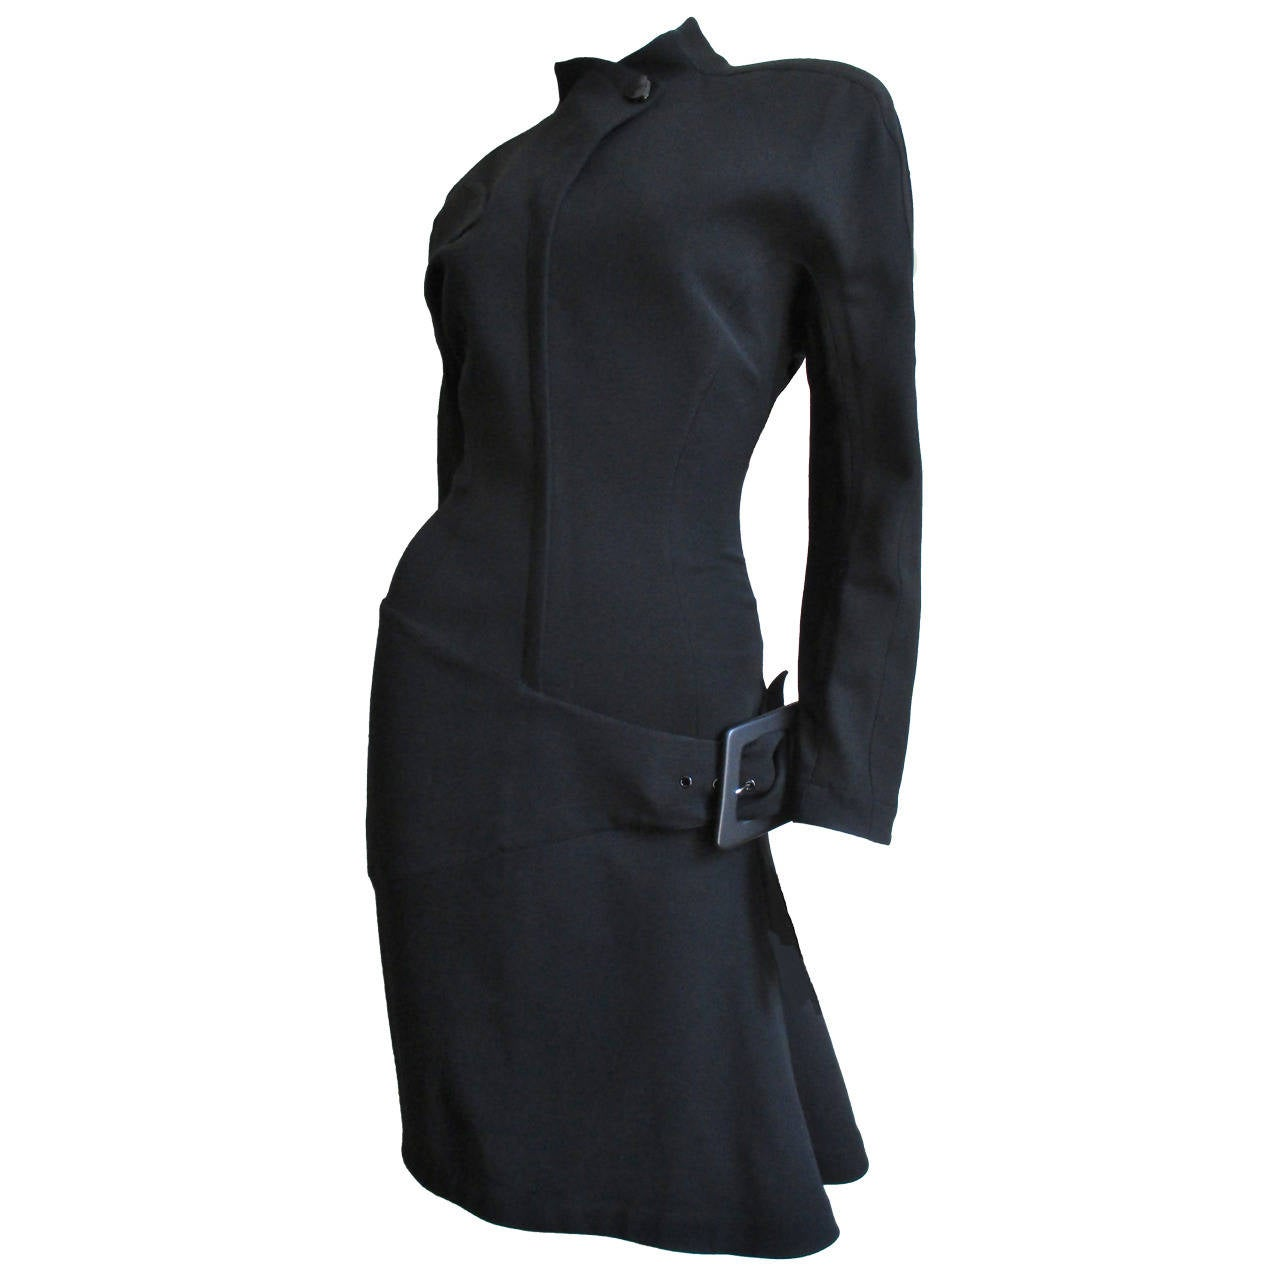 Thierry Mugler Asymmetical Hem Dress 1